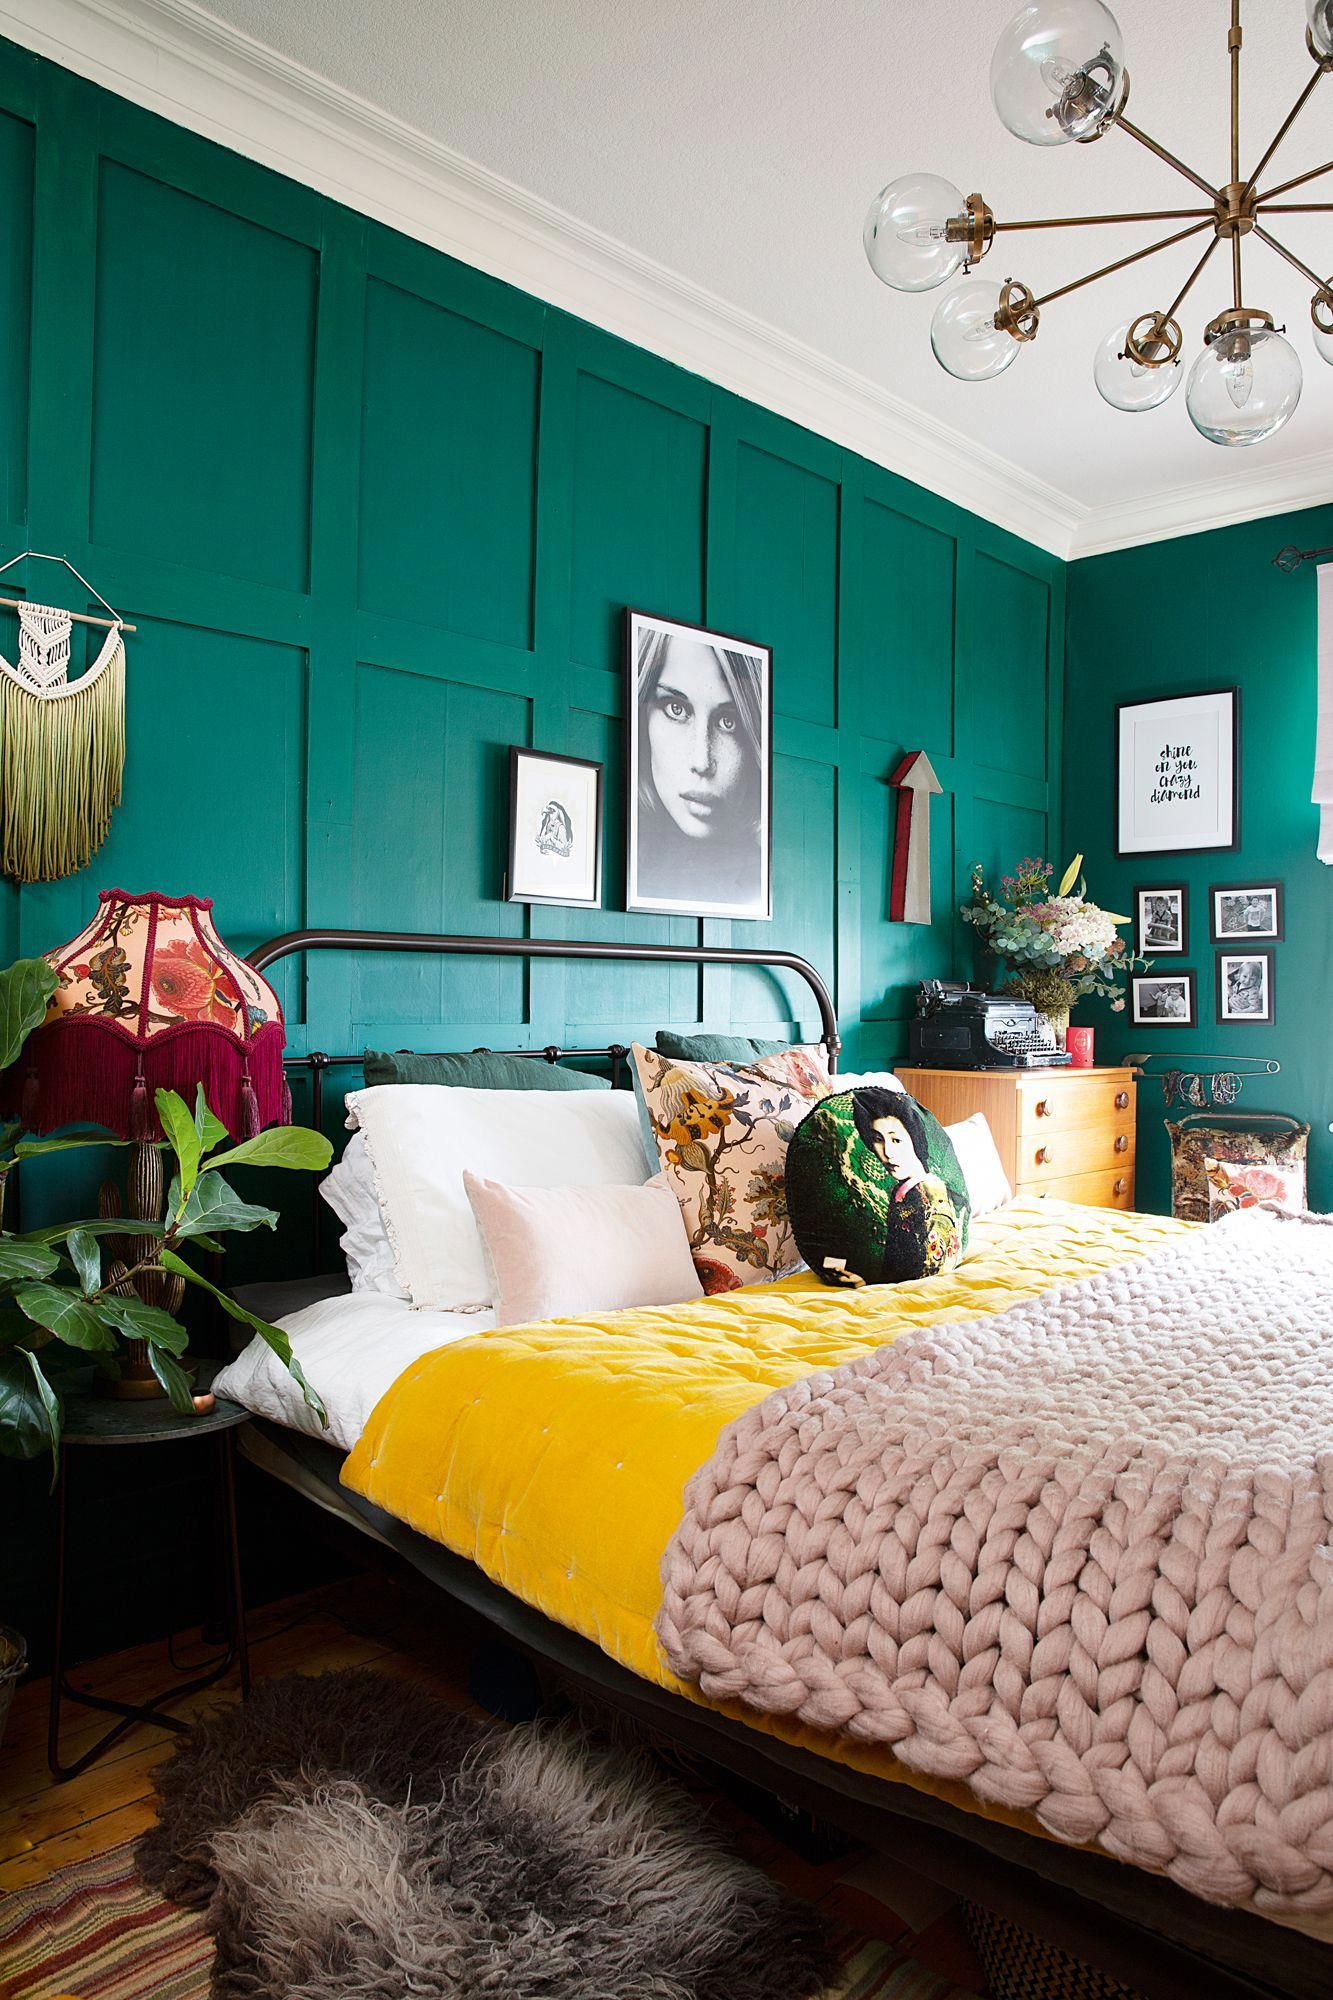 20 Great Ways To Use Your Spare Room Green Bedroom Walls Feature Wall Bedroom Home Decor Bedroom Green spare bedroom ideas